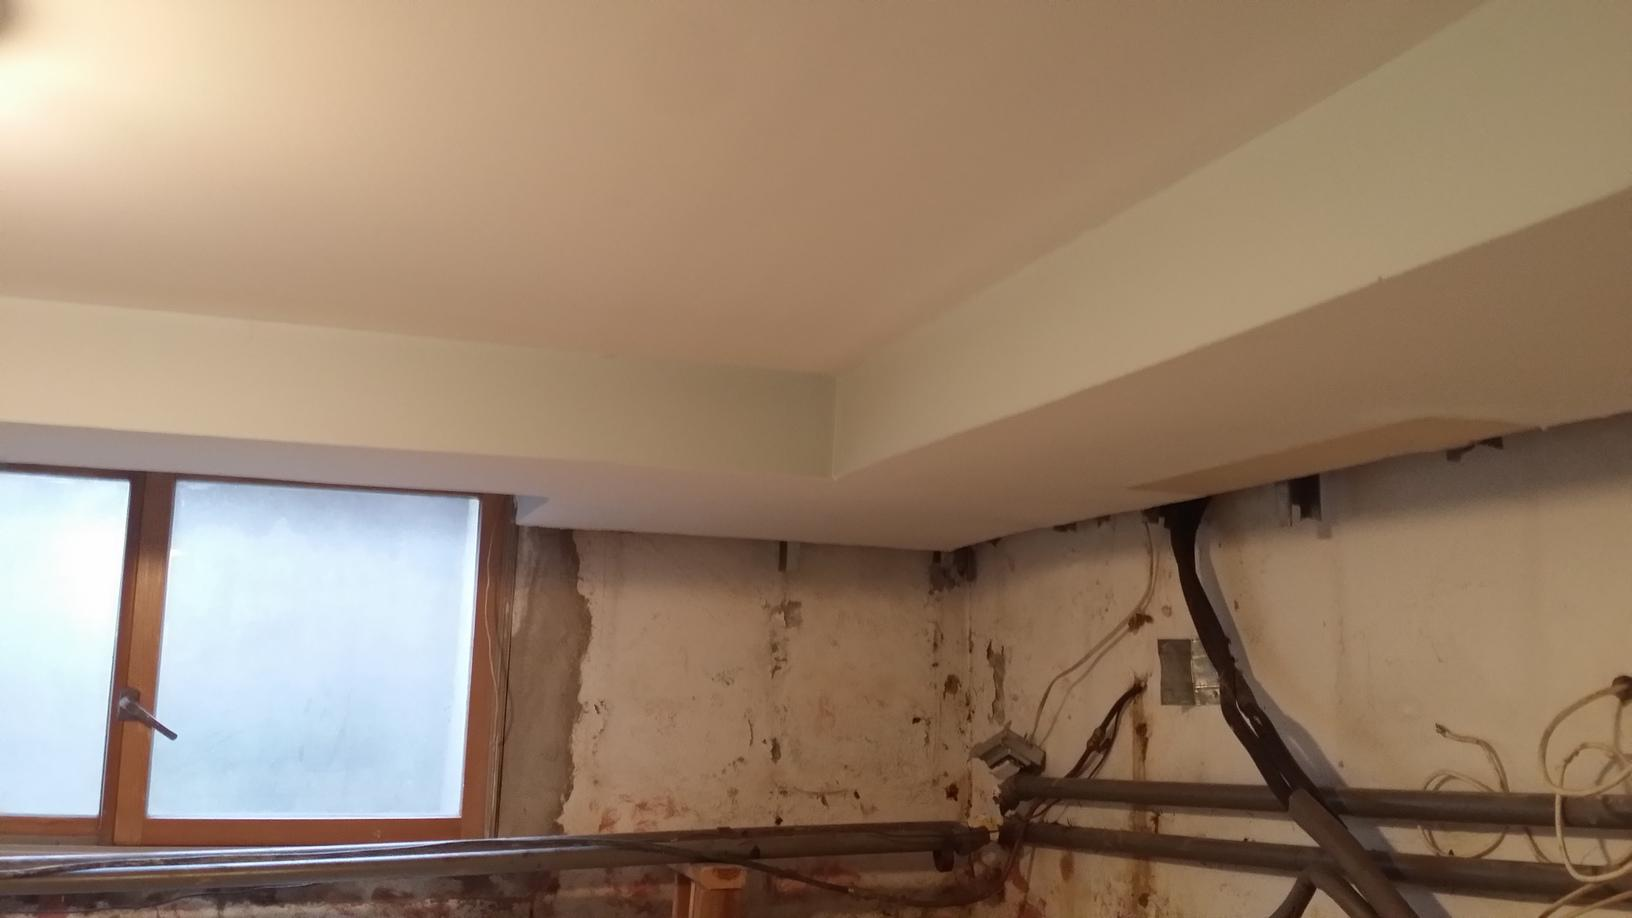 CleanSpace Wall system installed in Scarsdale, NY Basment - Before Photo